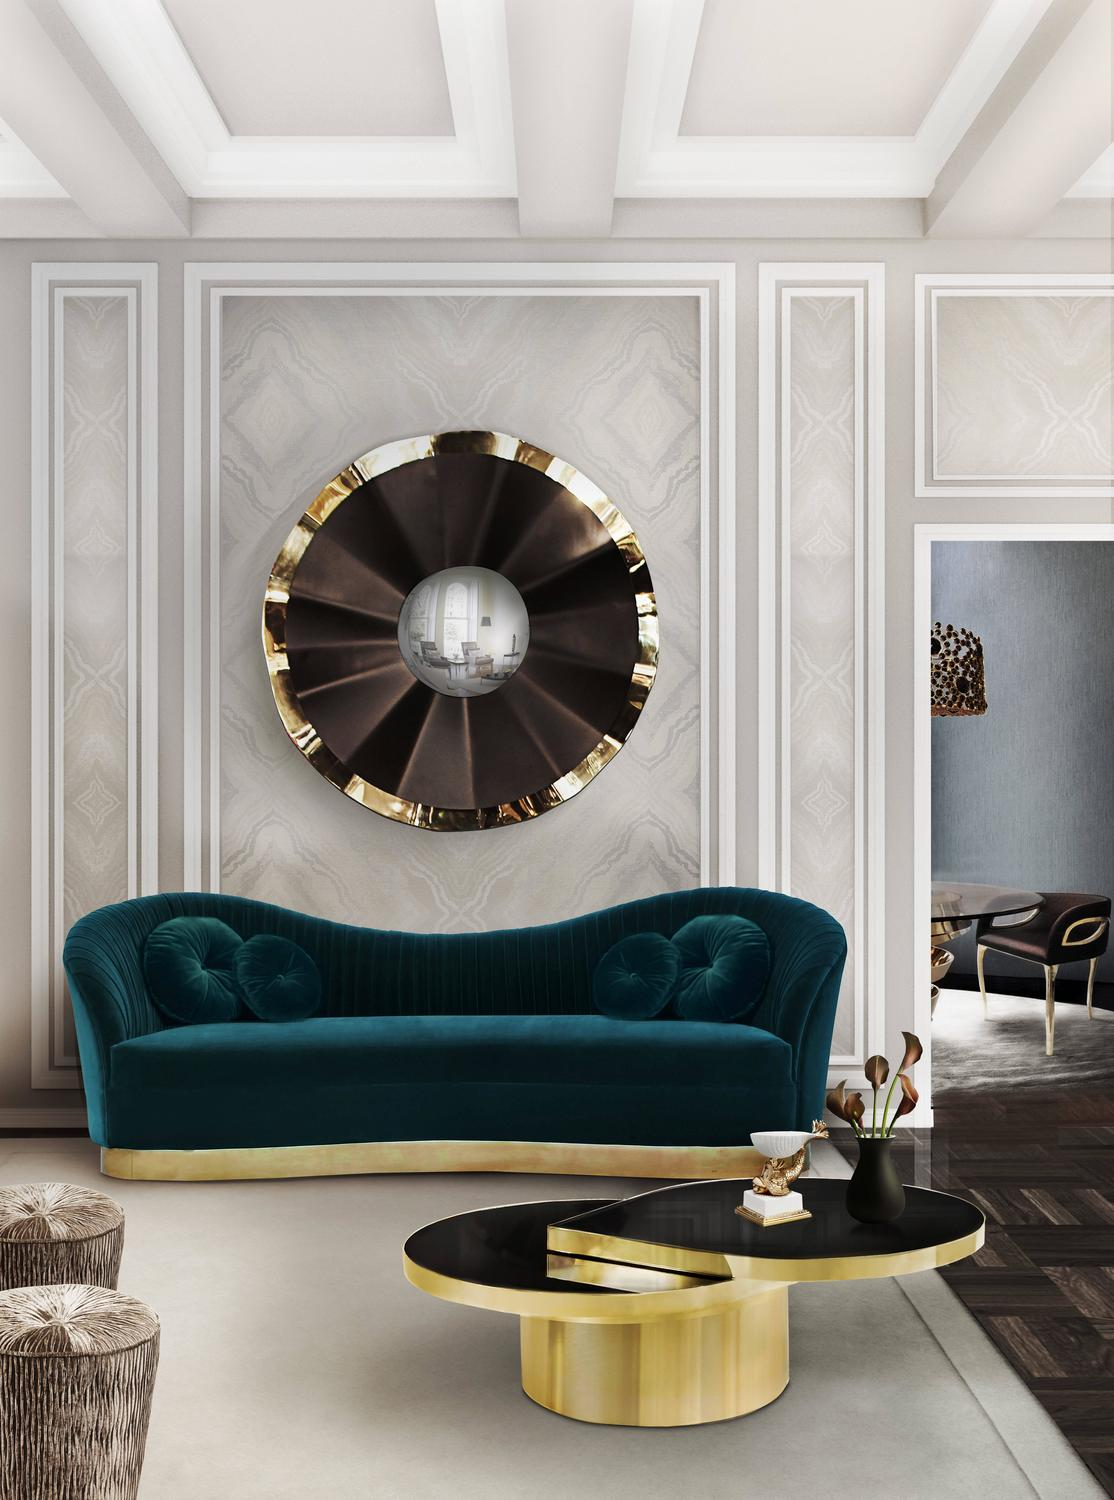 Top 10 Mirror Design For Living Room